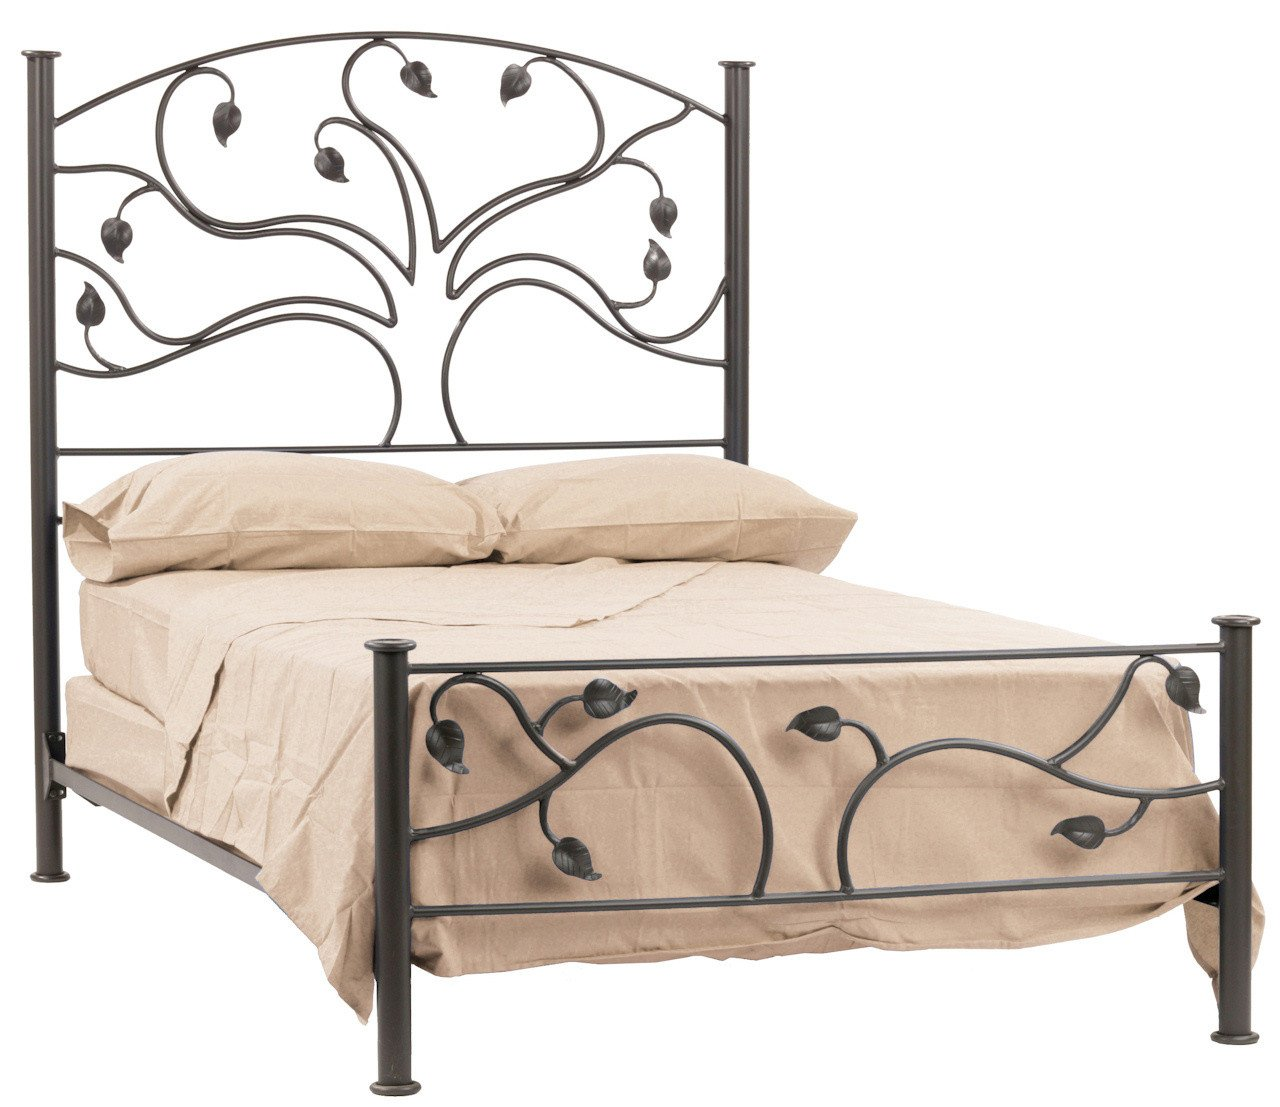 Stone County Oak Queen Bed Live